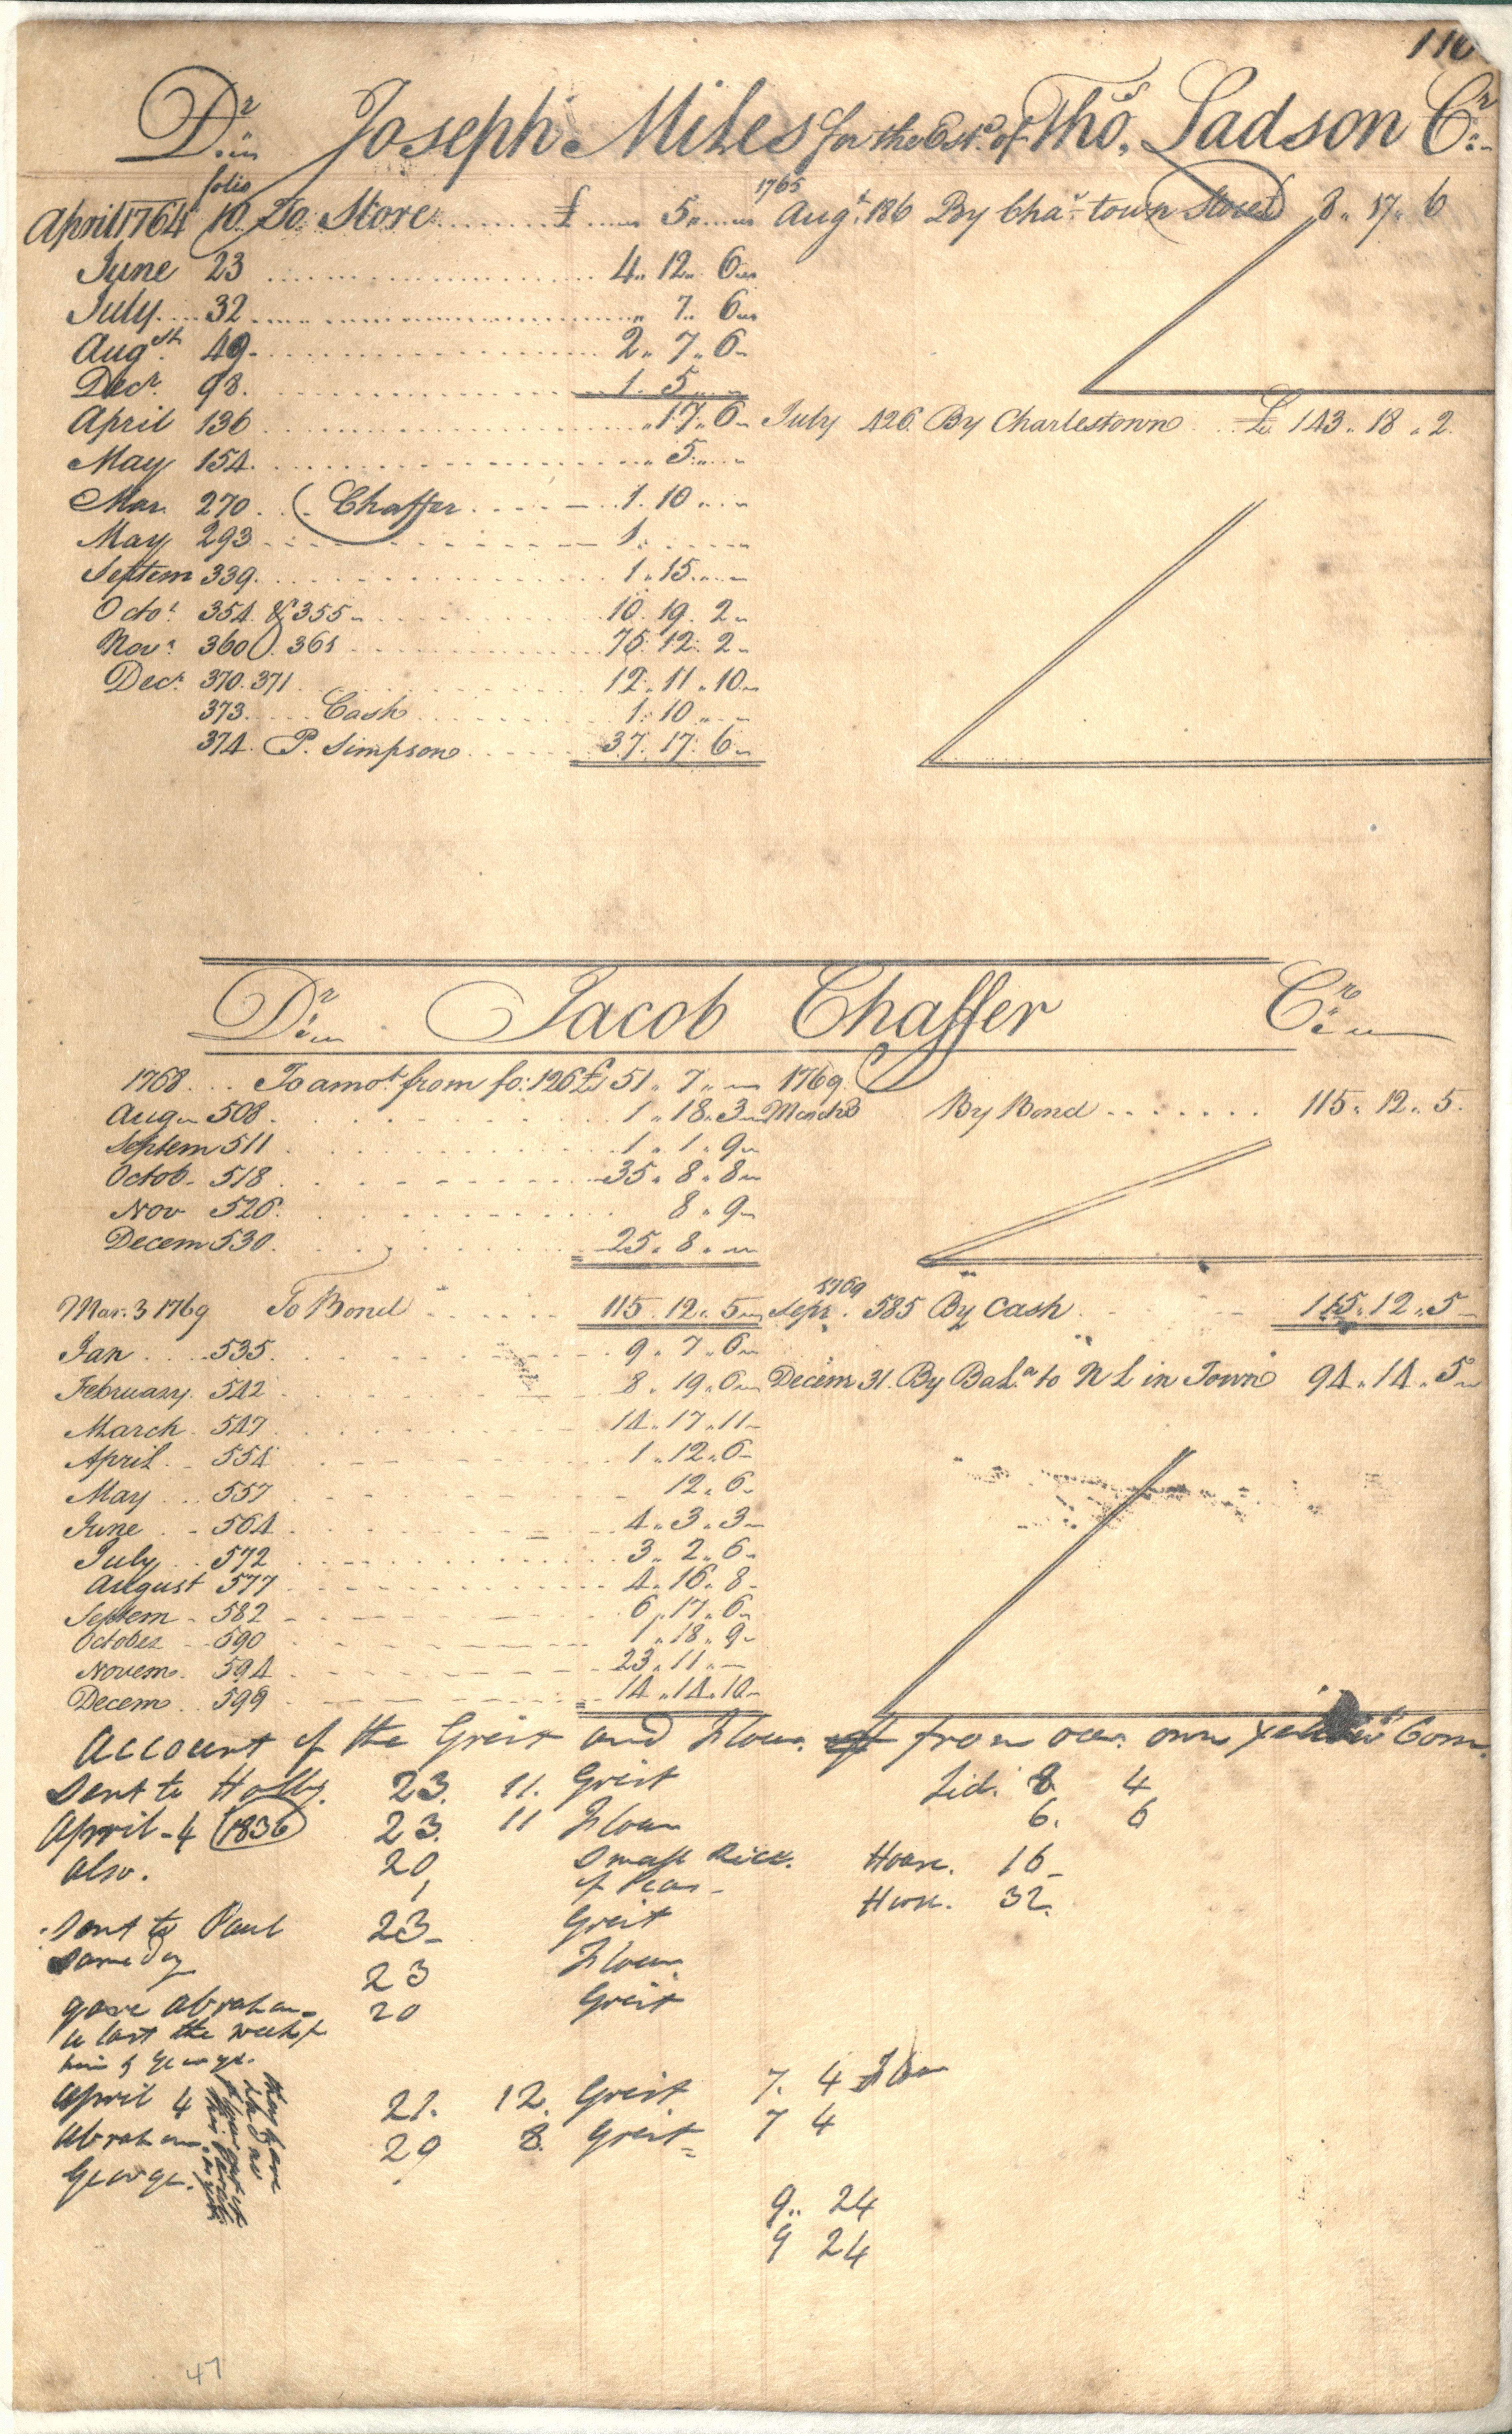 Plowden Weston's Business Ledger, page 116